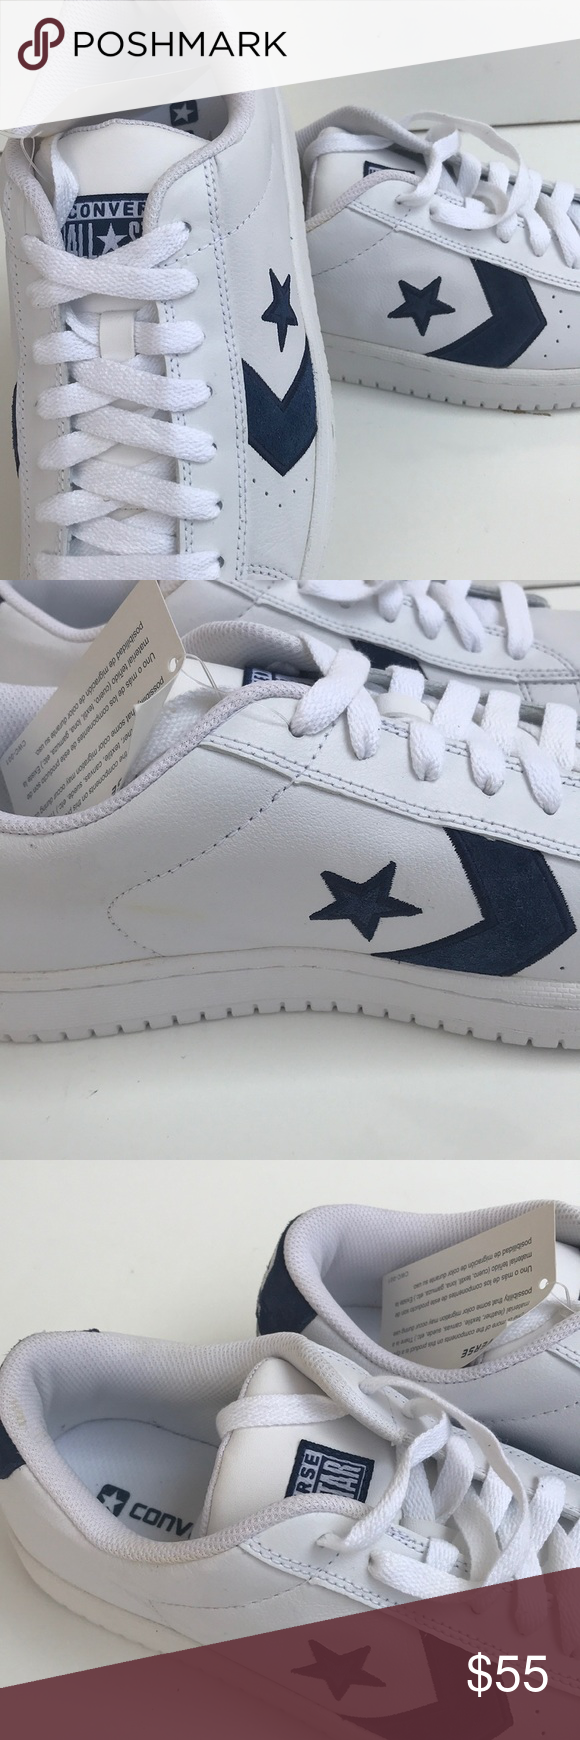 6b11e8e5f1767a Converse Unisex Ev Pro Ox White Navy Sz 11.5 New! Great condition. See  images for small nicks. Womens size 11.5   Men s size 10 Converse Shoes  Athletic ...